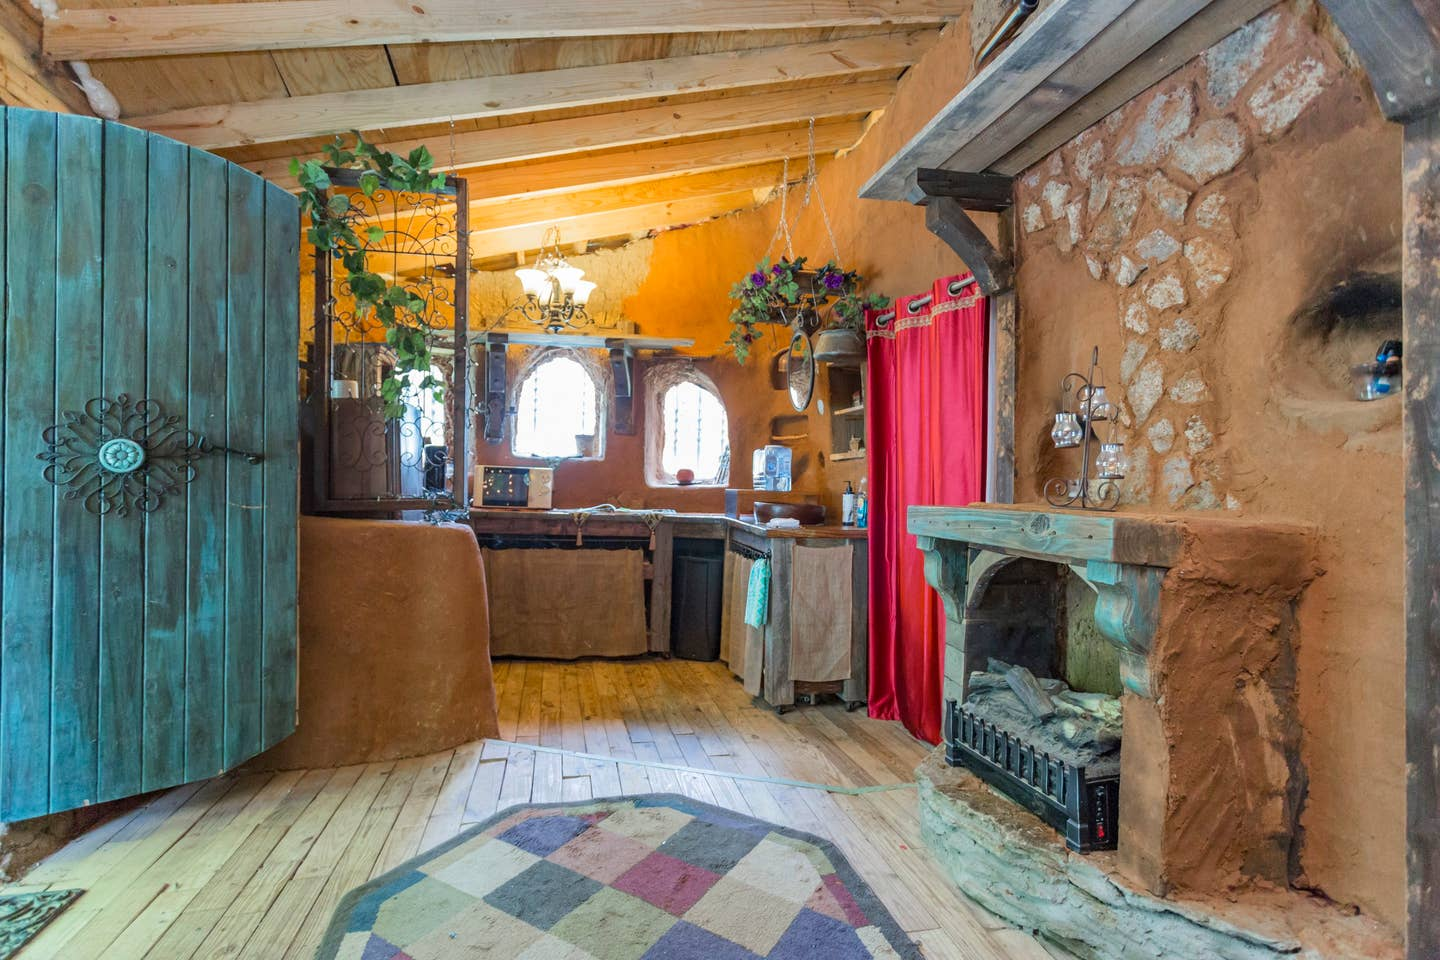 Hobbit and Lord of the Rings Airbnb homes and houses in the USA Virginia Fairfield mud clay home interior